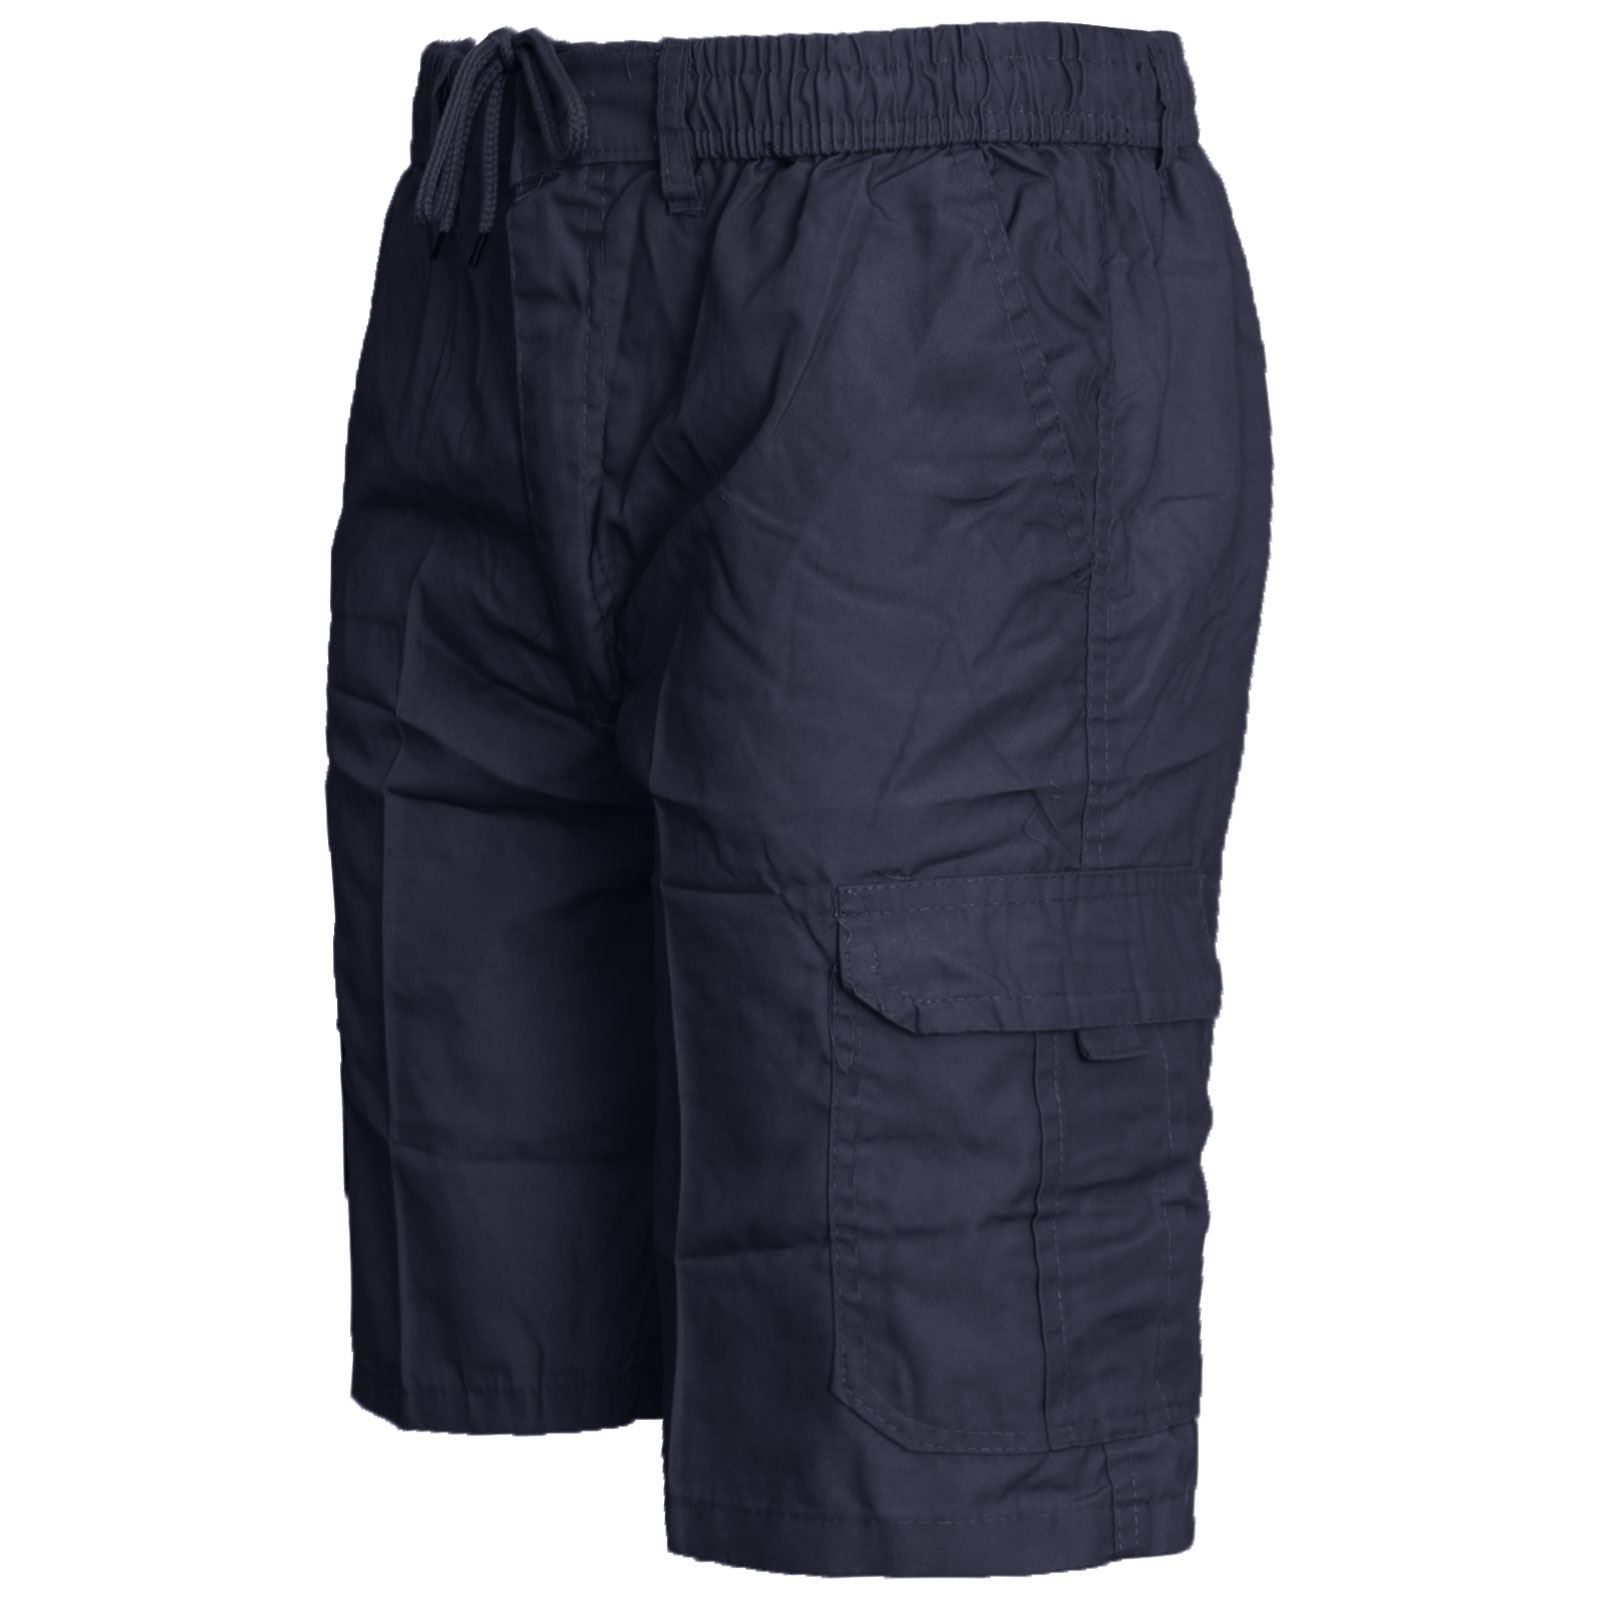 MENS-ELASTICATED-KNEE-LENGTH-OR-3-4-SHORTS-CARGO-COMBAT-MULTI-POCKET-SUMMER-PANT thumbnail 15